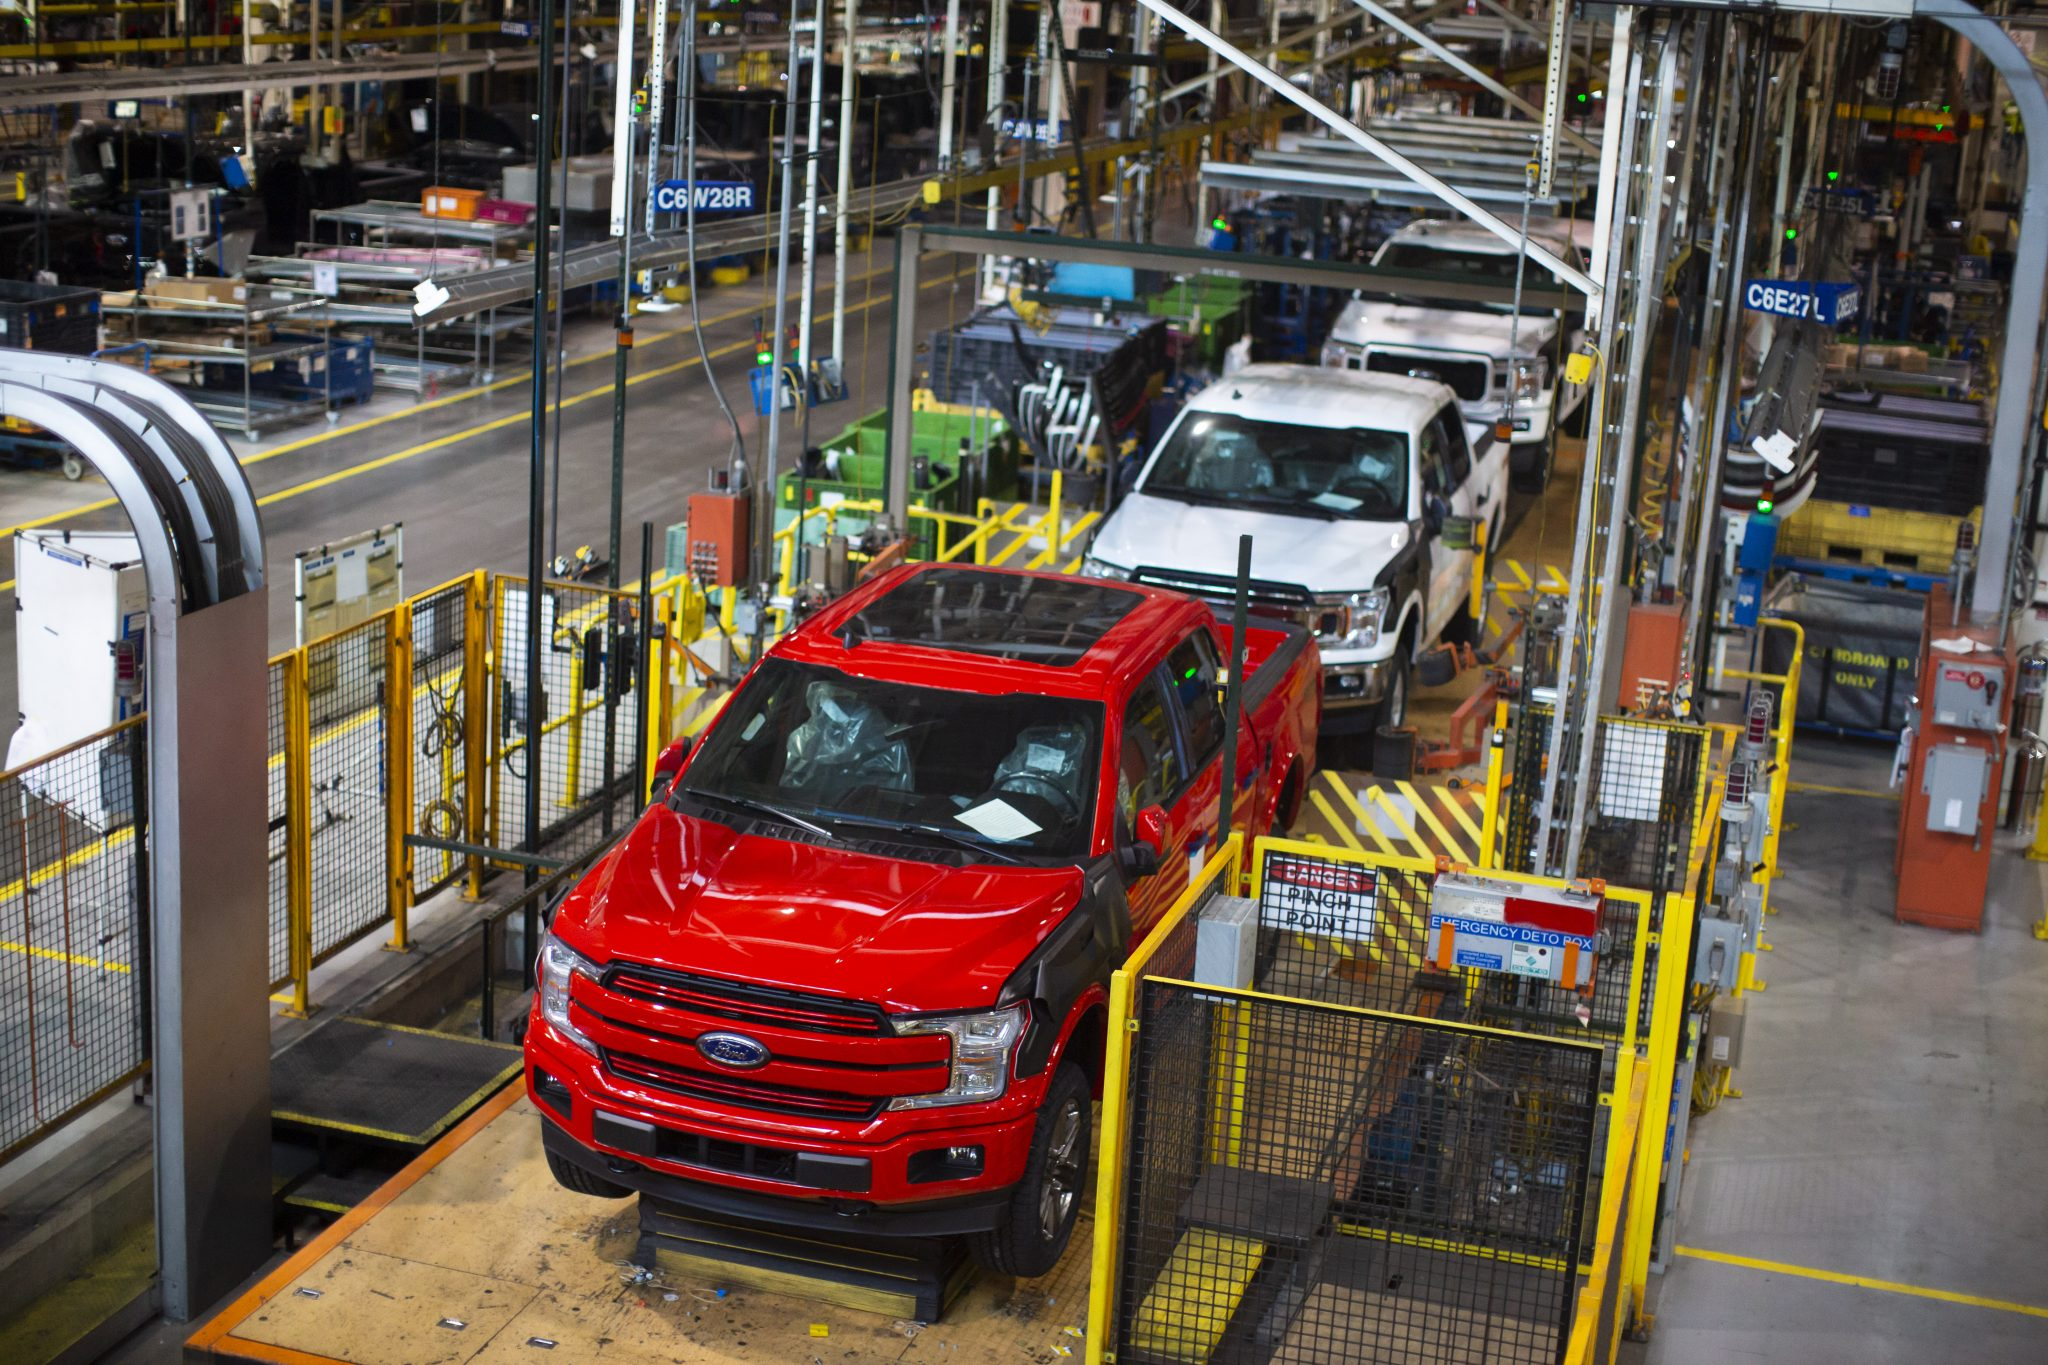 ROBUST SAFETY AND CARE MEASURES HAVE BEEN IMPLEMENTED GLOBALLY TO SUPPORT A SAFE AND HEALTHY ENVIRONMENT. PHOTO FORD